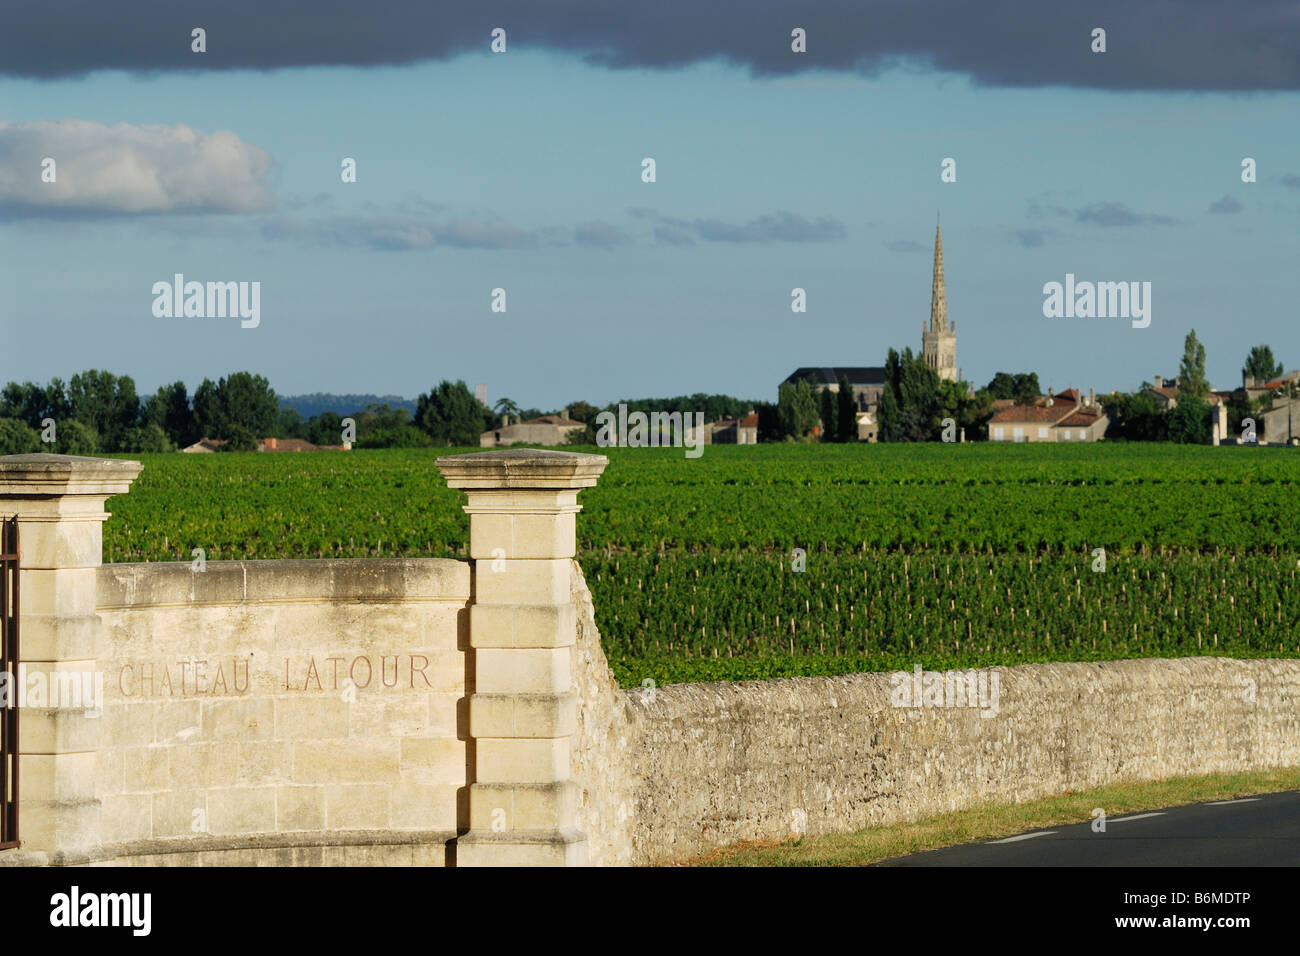 Pauillac France Chateau Latour boundary and the village of St Julien Beychevelle in the distance - Stock Image